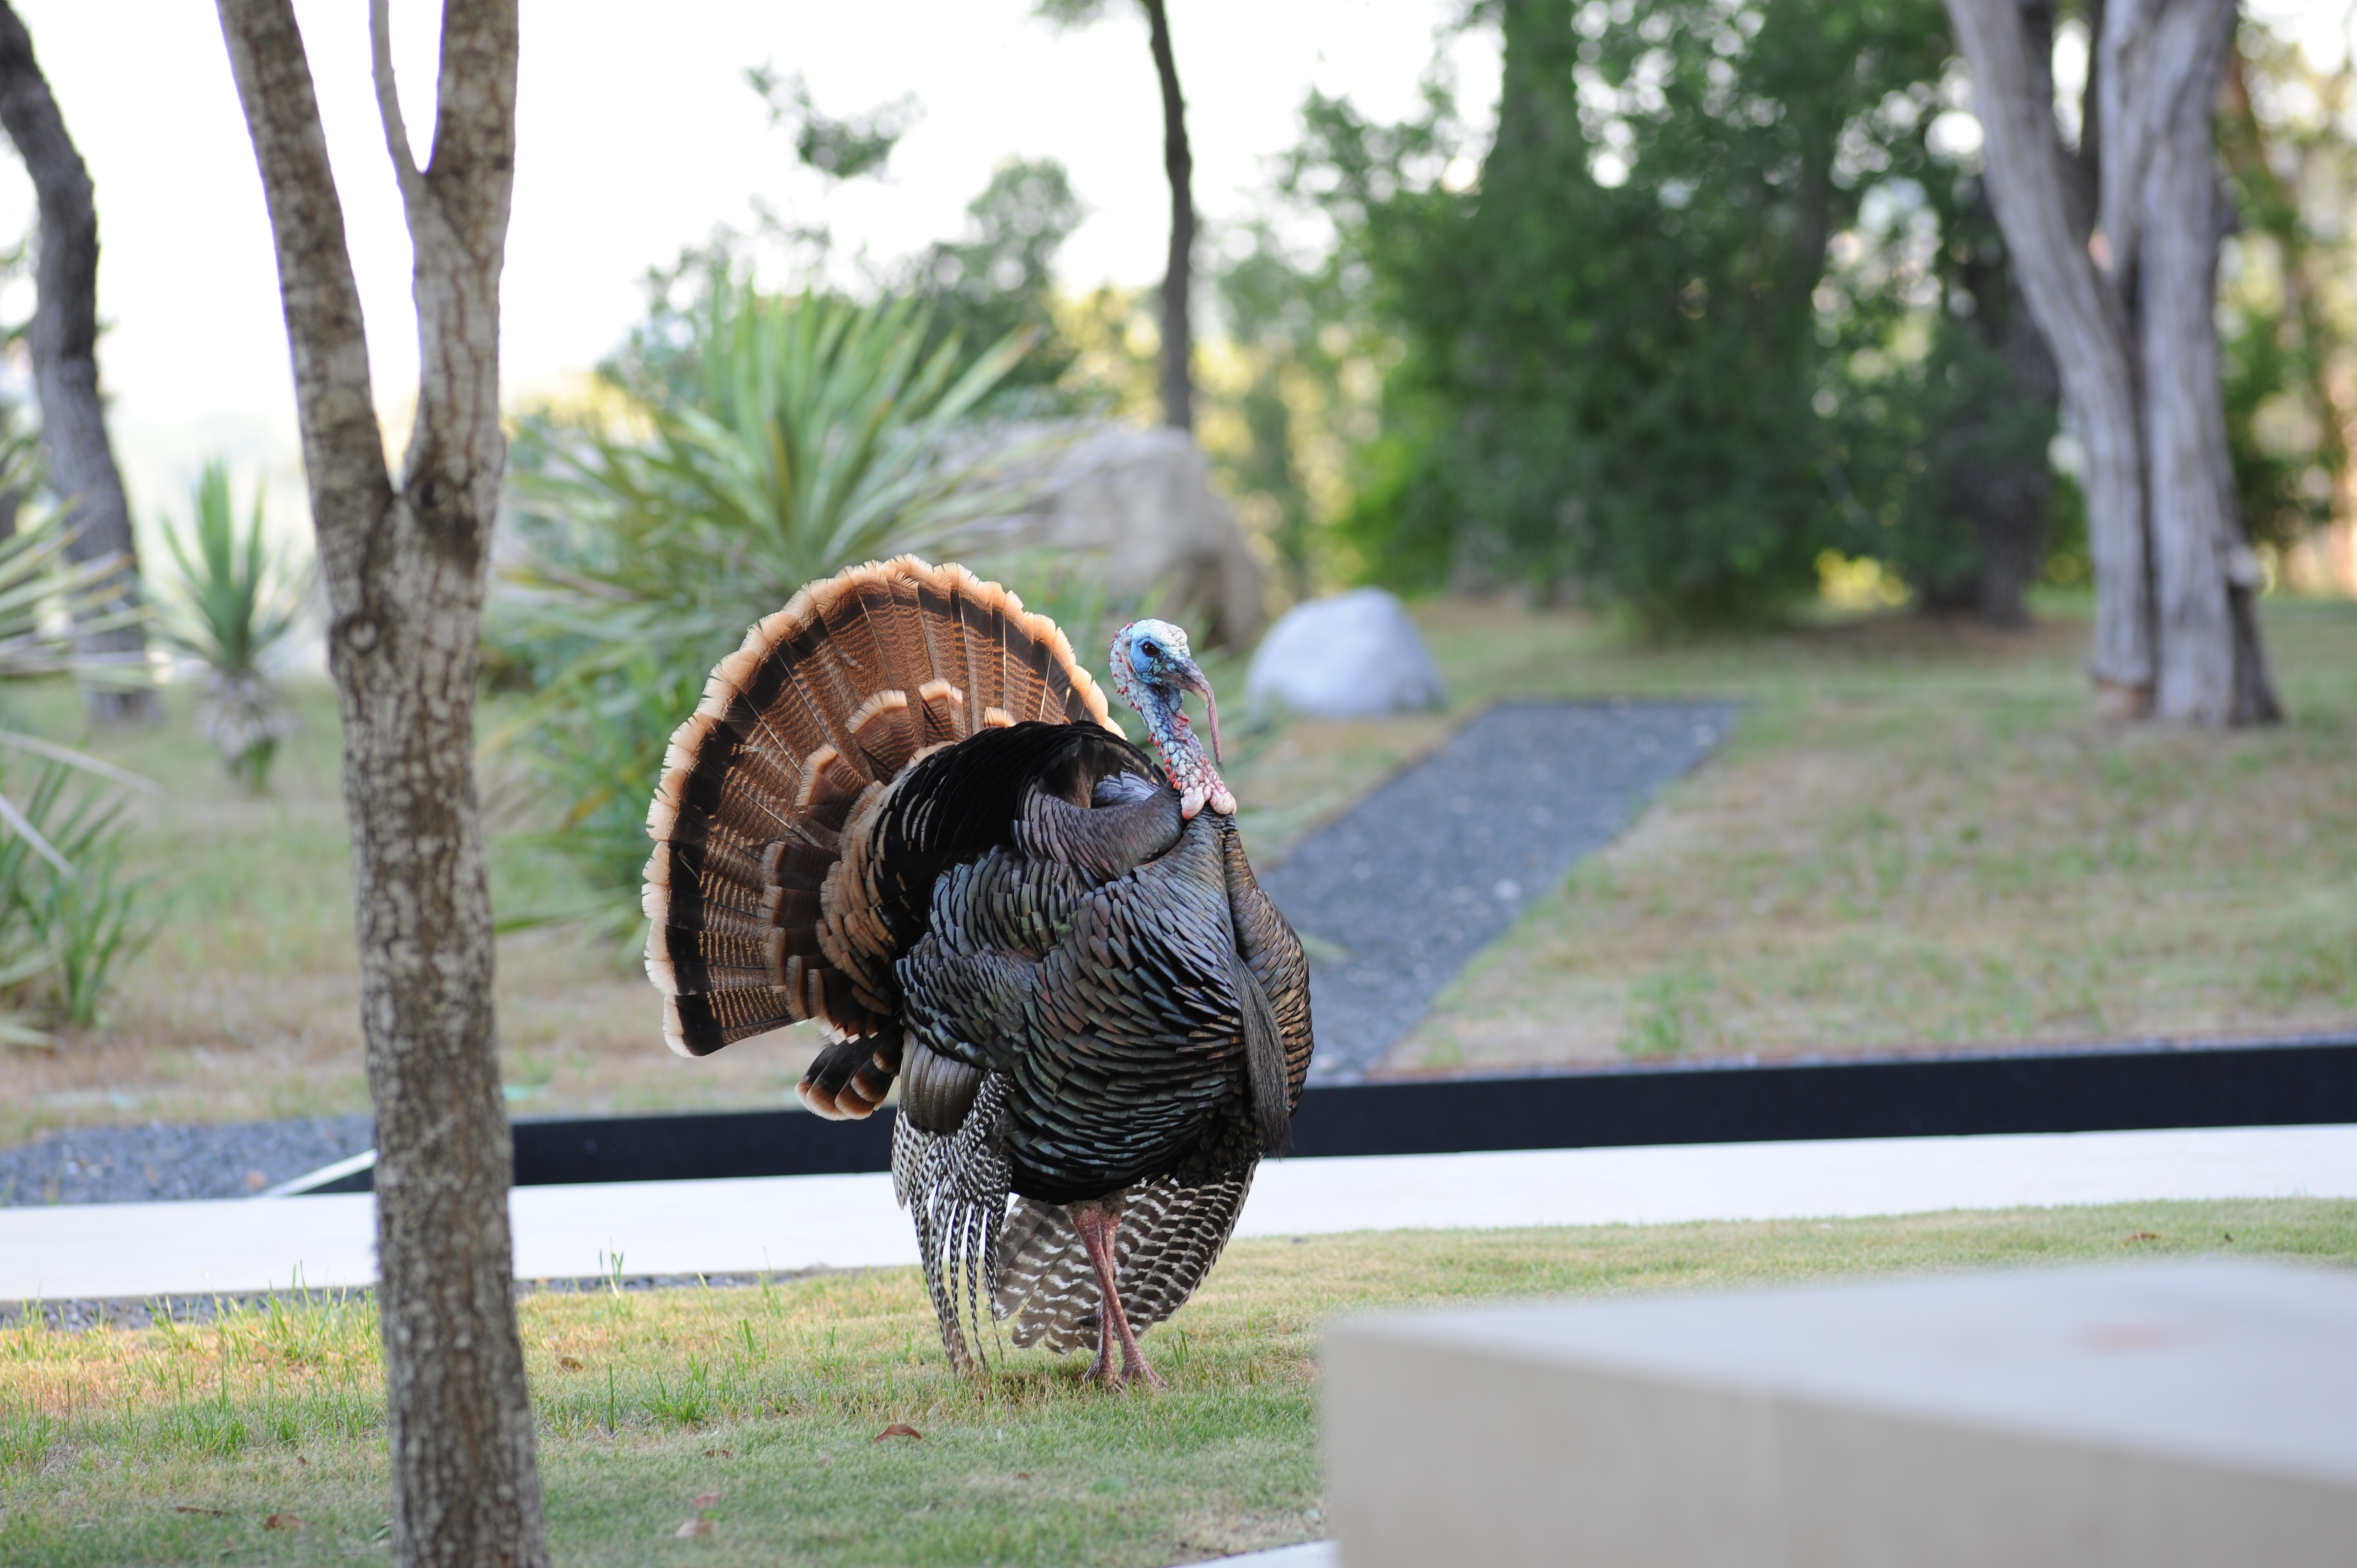 Male turkey on display